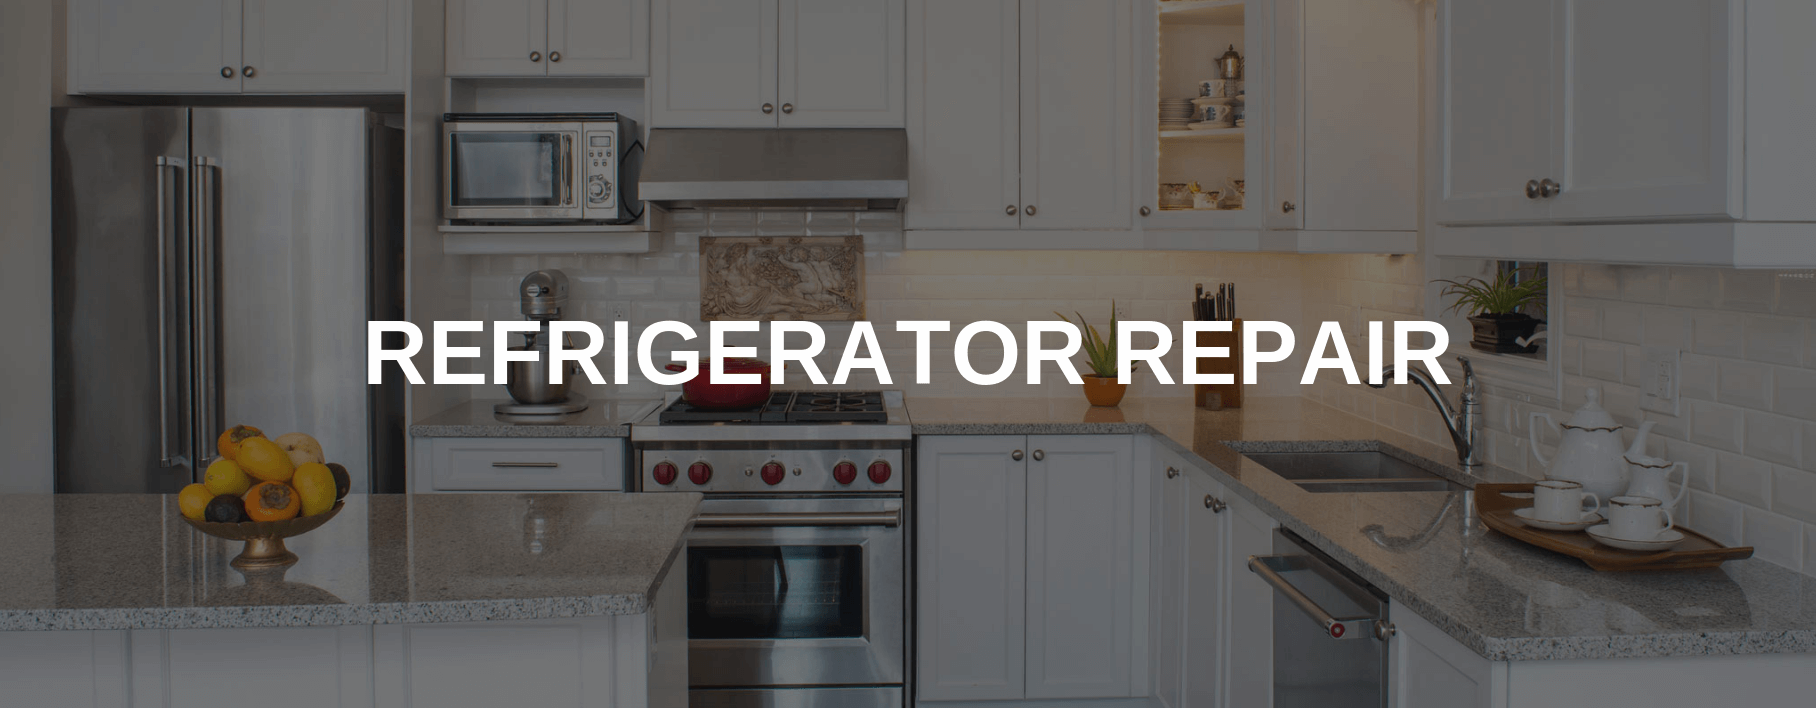 grapevine refrigerator repair